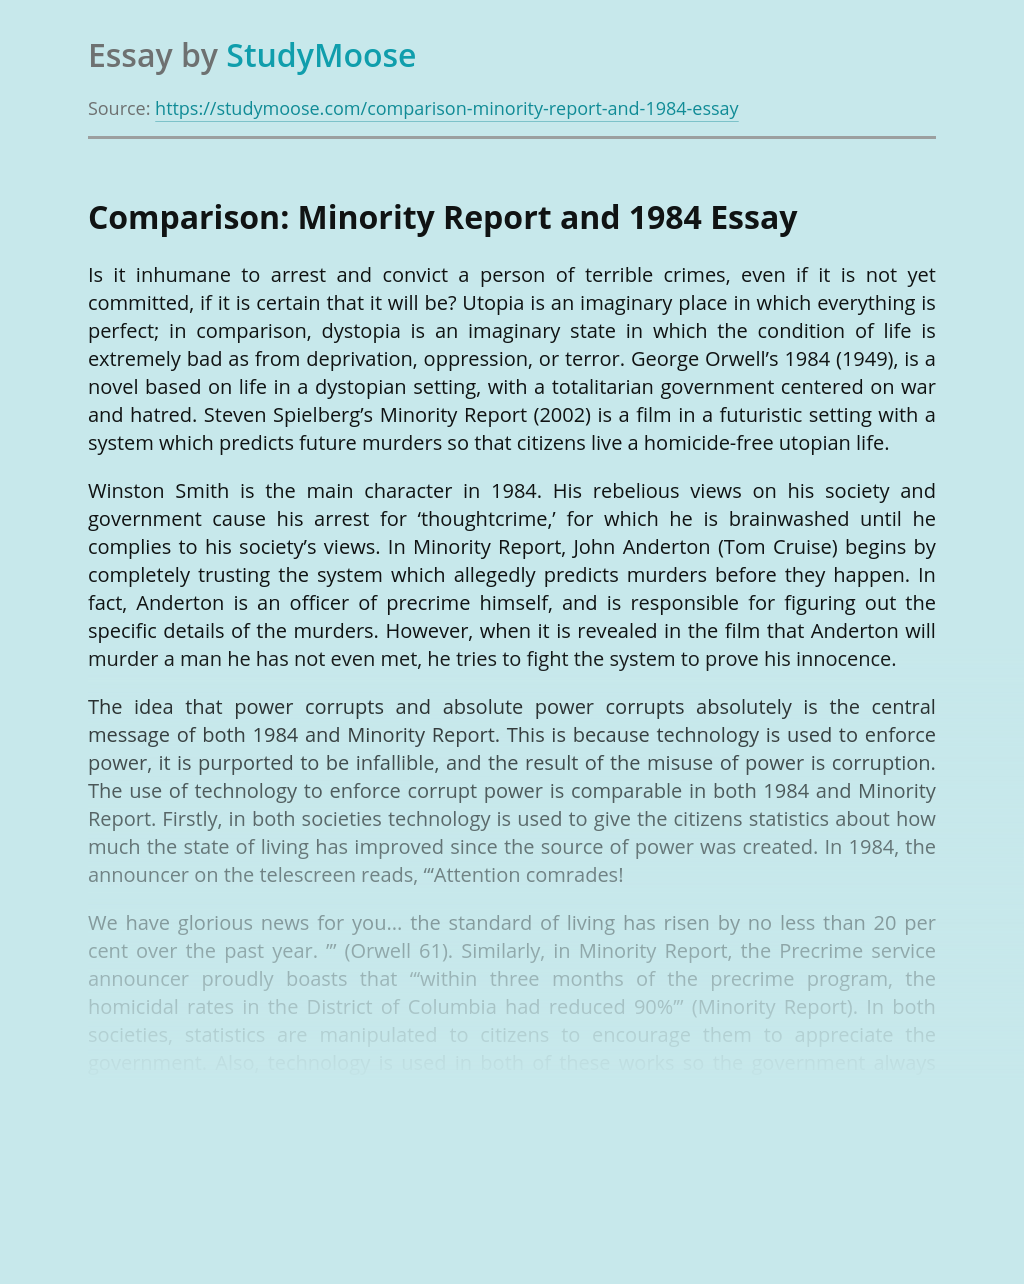 Comparison: Minority Report and 1984